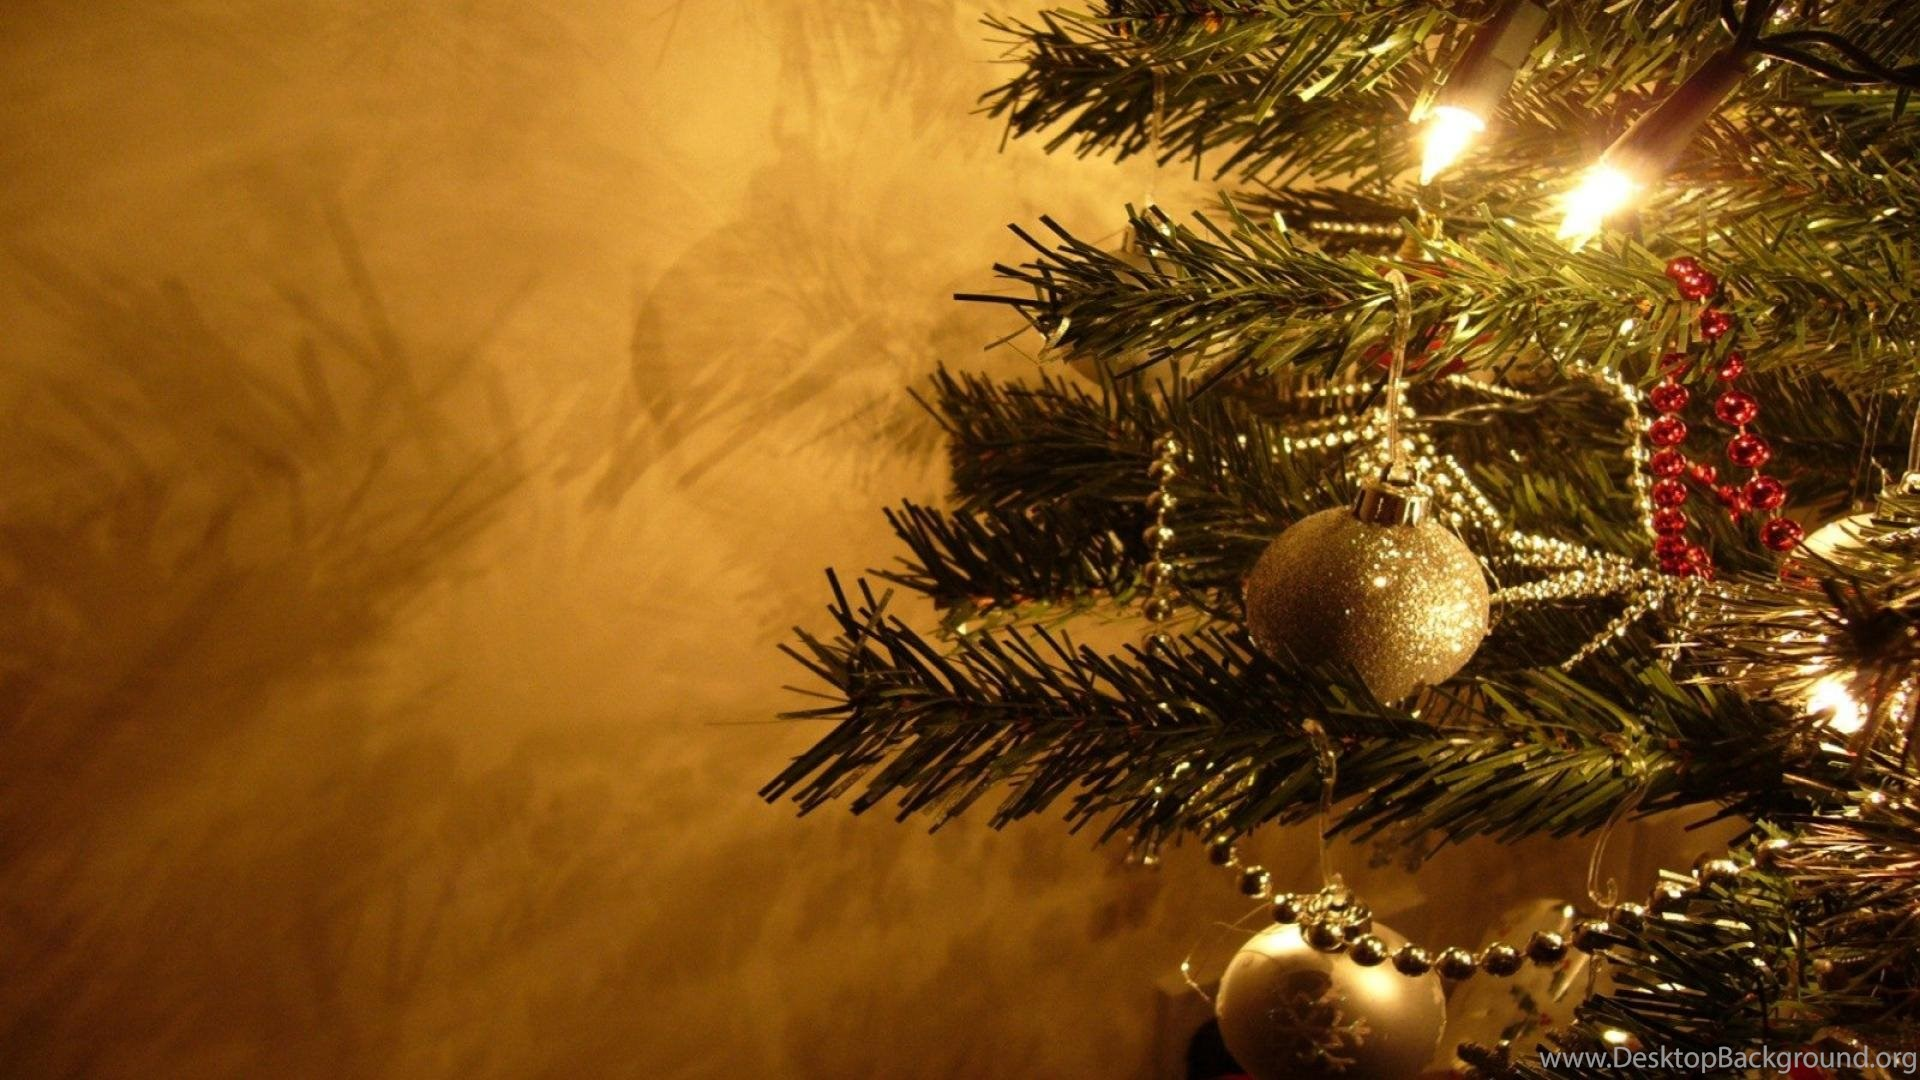 Gold christmas desktop wallpapers hd wallpapers free to - Free christmas images for desktop wallpaper ...